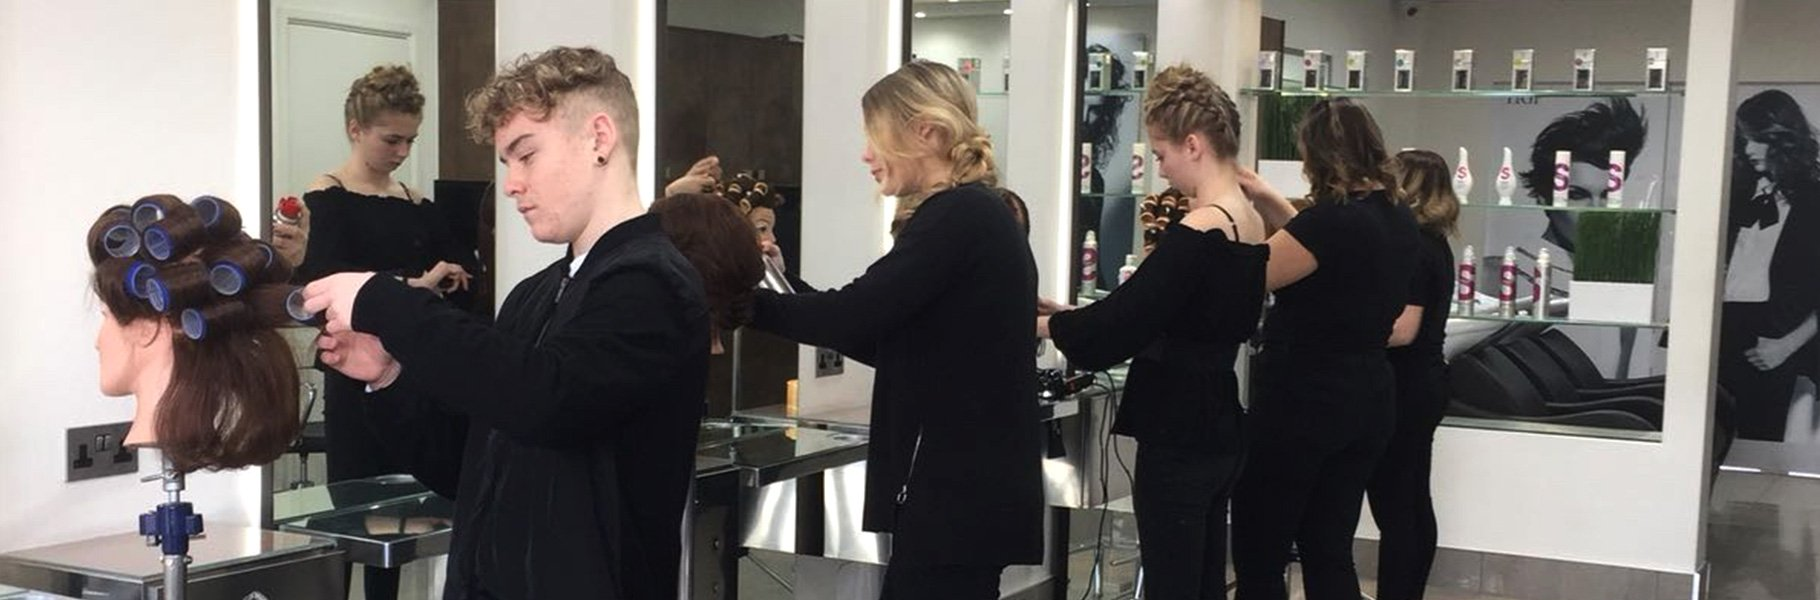 Trainee Hairdressers at the Forresters Training Academy